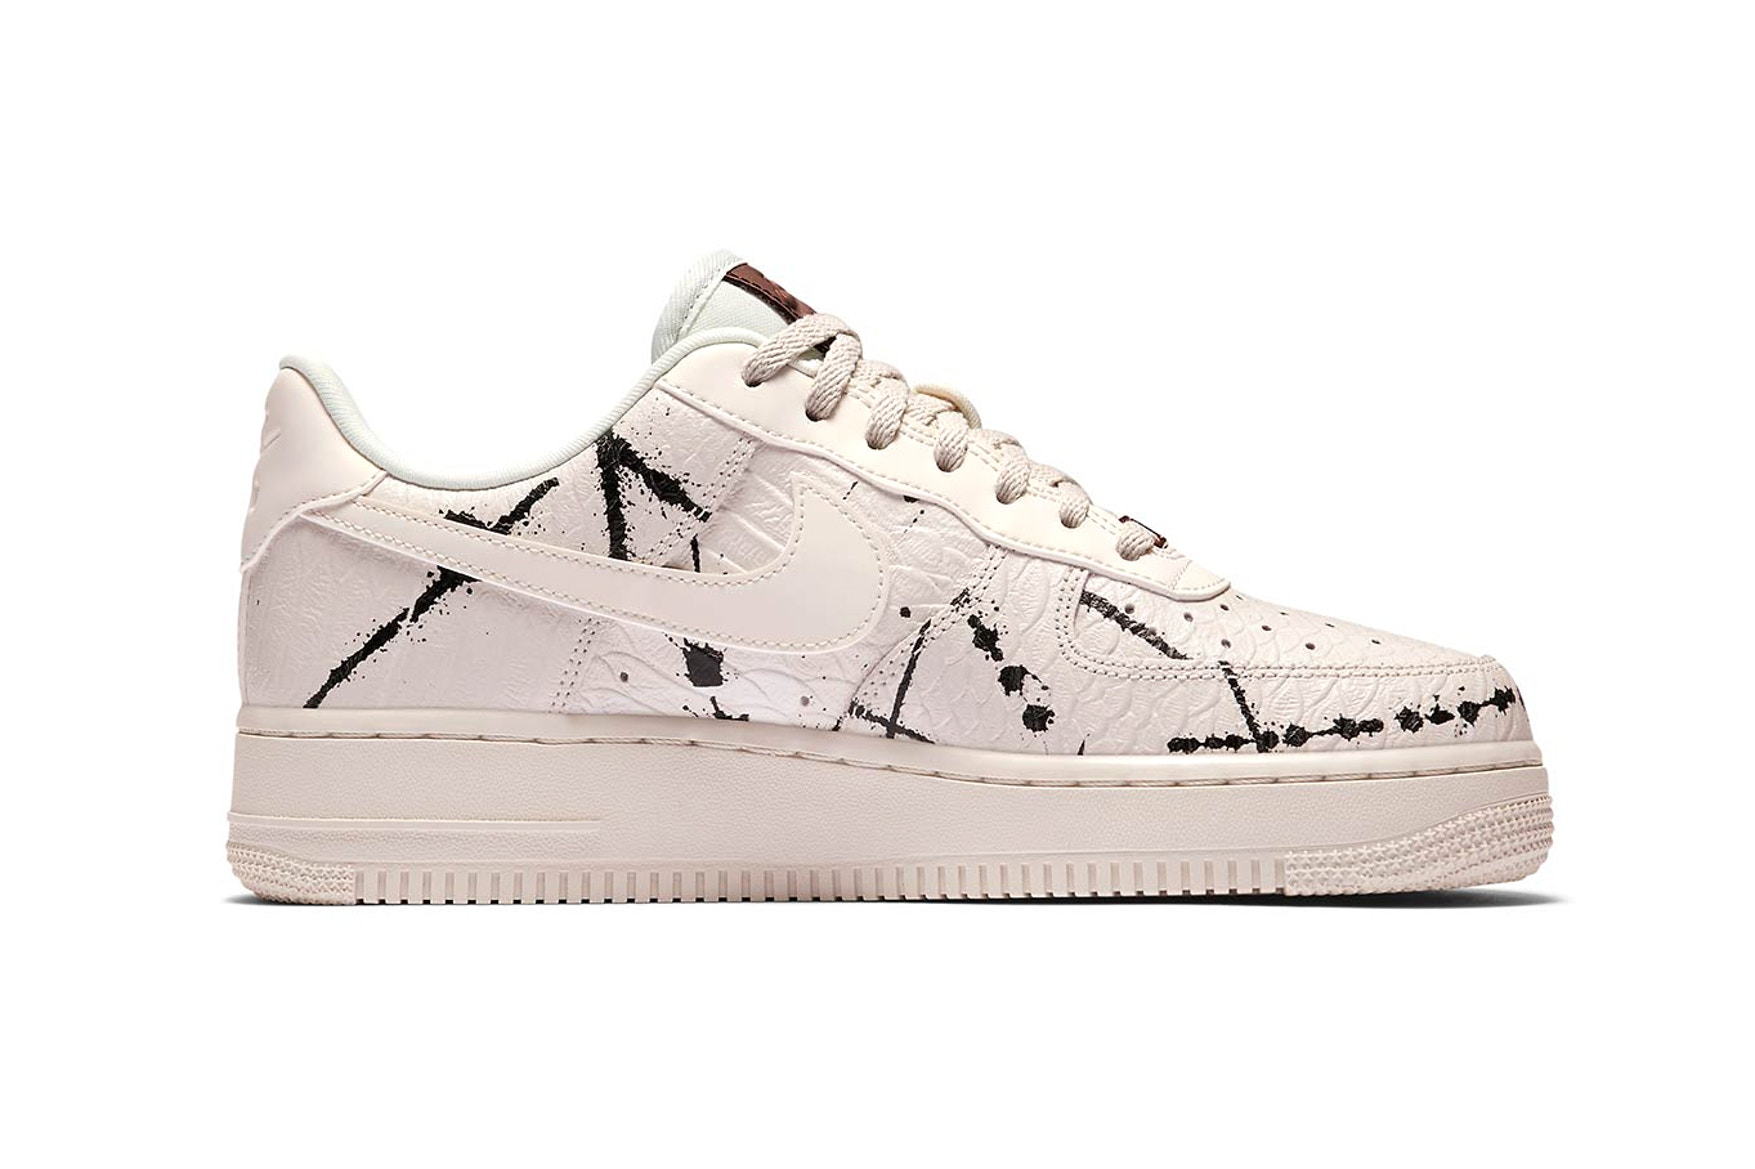 nike-air-force-1-low-phantom-snakeskin-release-3